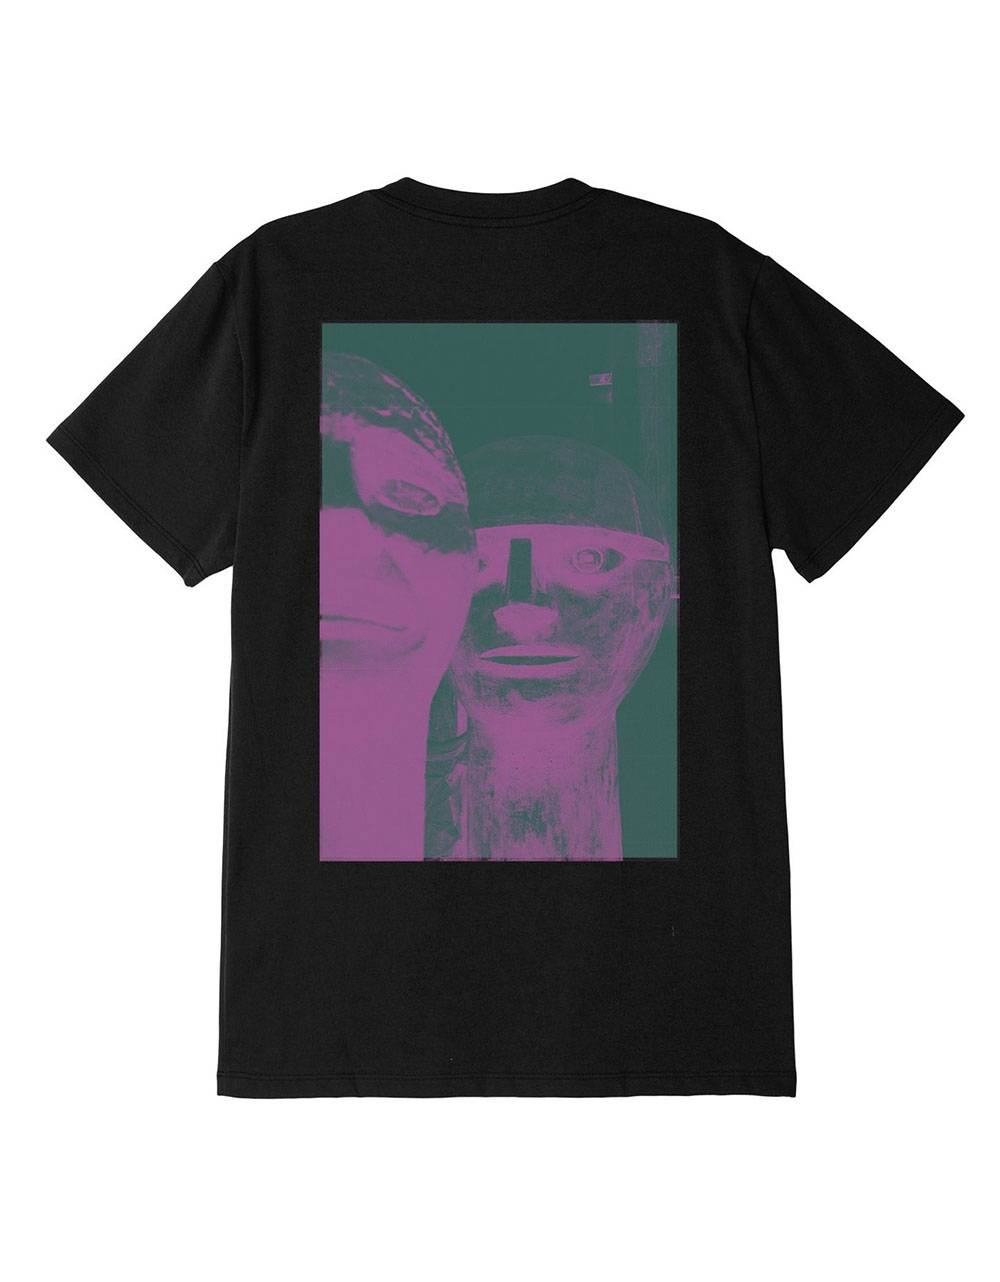 Obey no idols sustainable tee - black obey T-shirt 50,00€